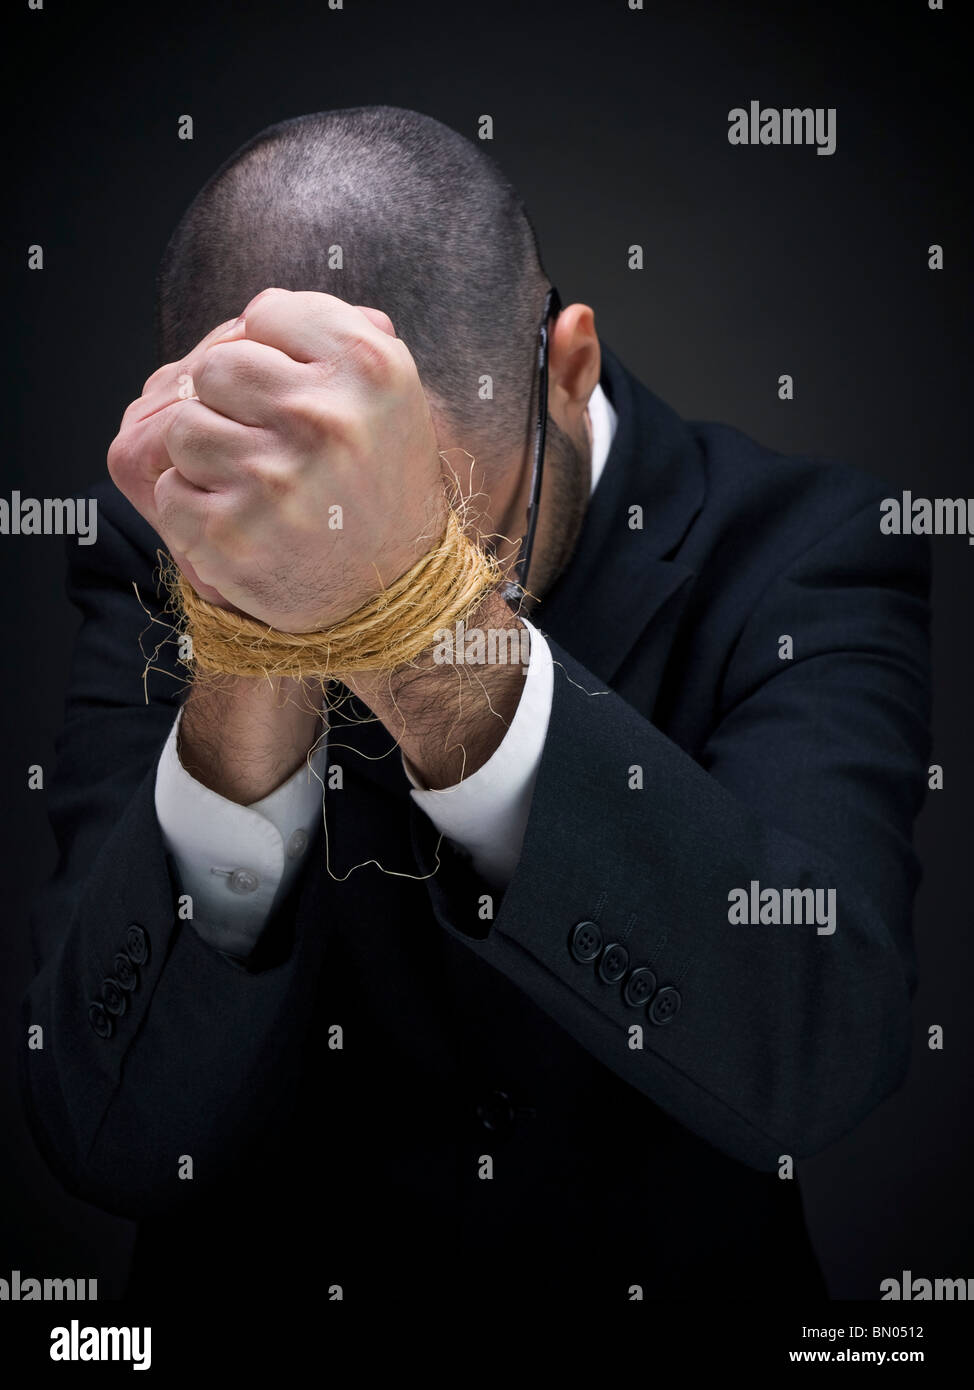 A man on a suit is raising his tied hands. - Stock Image